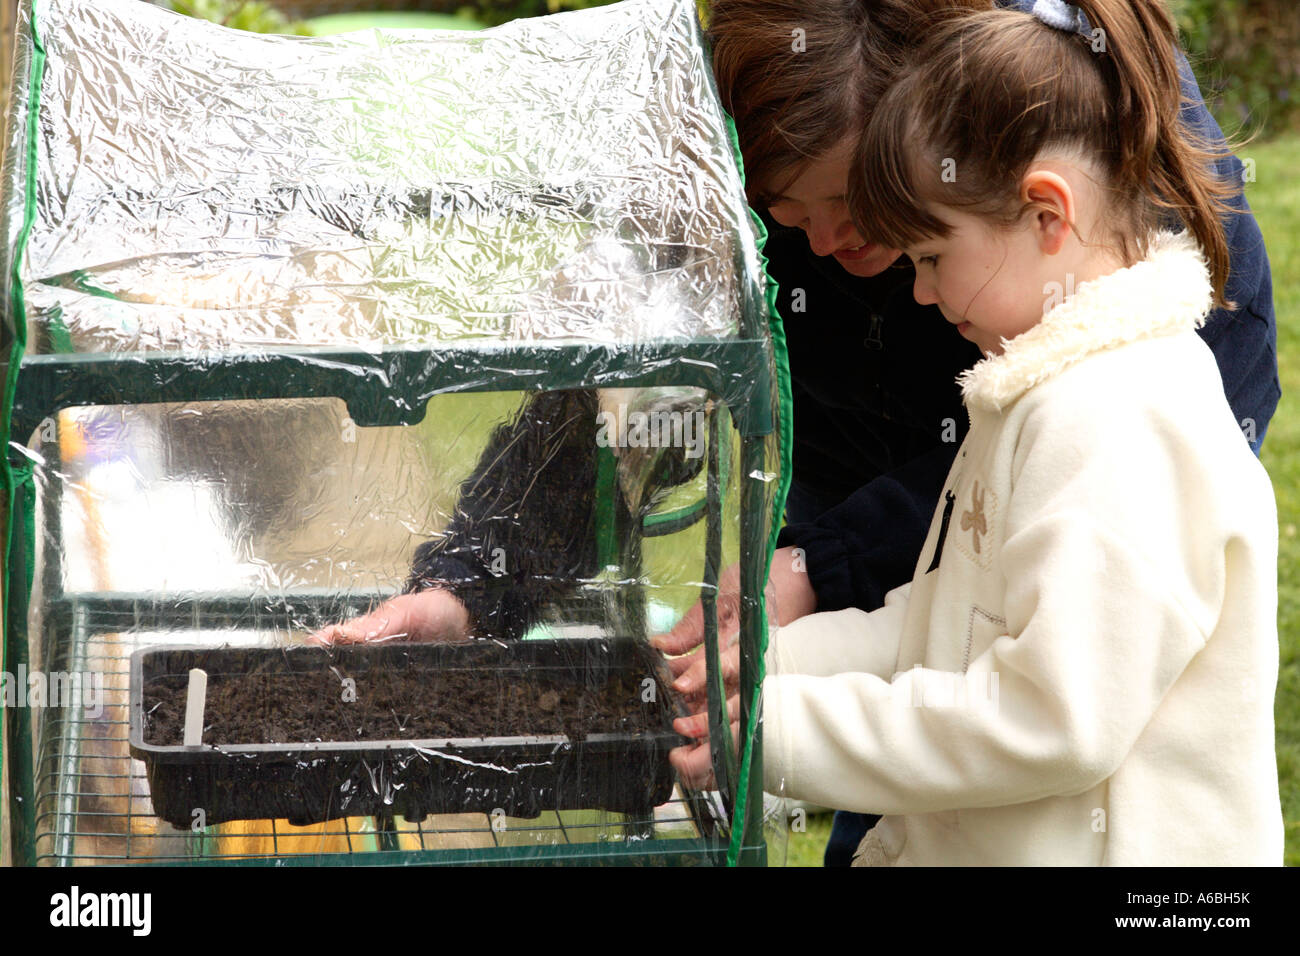 Mother helping her young daughter place planted seed trays into small plastic greenhouse for germination in early spring Stock Photo